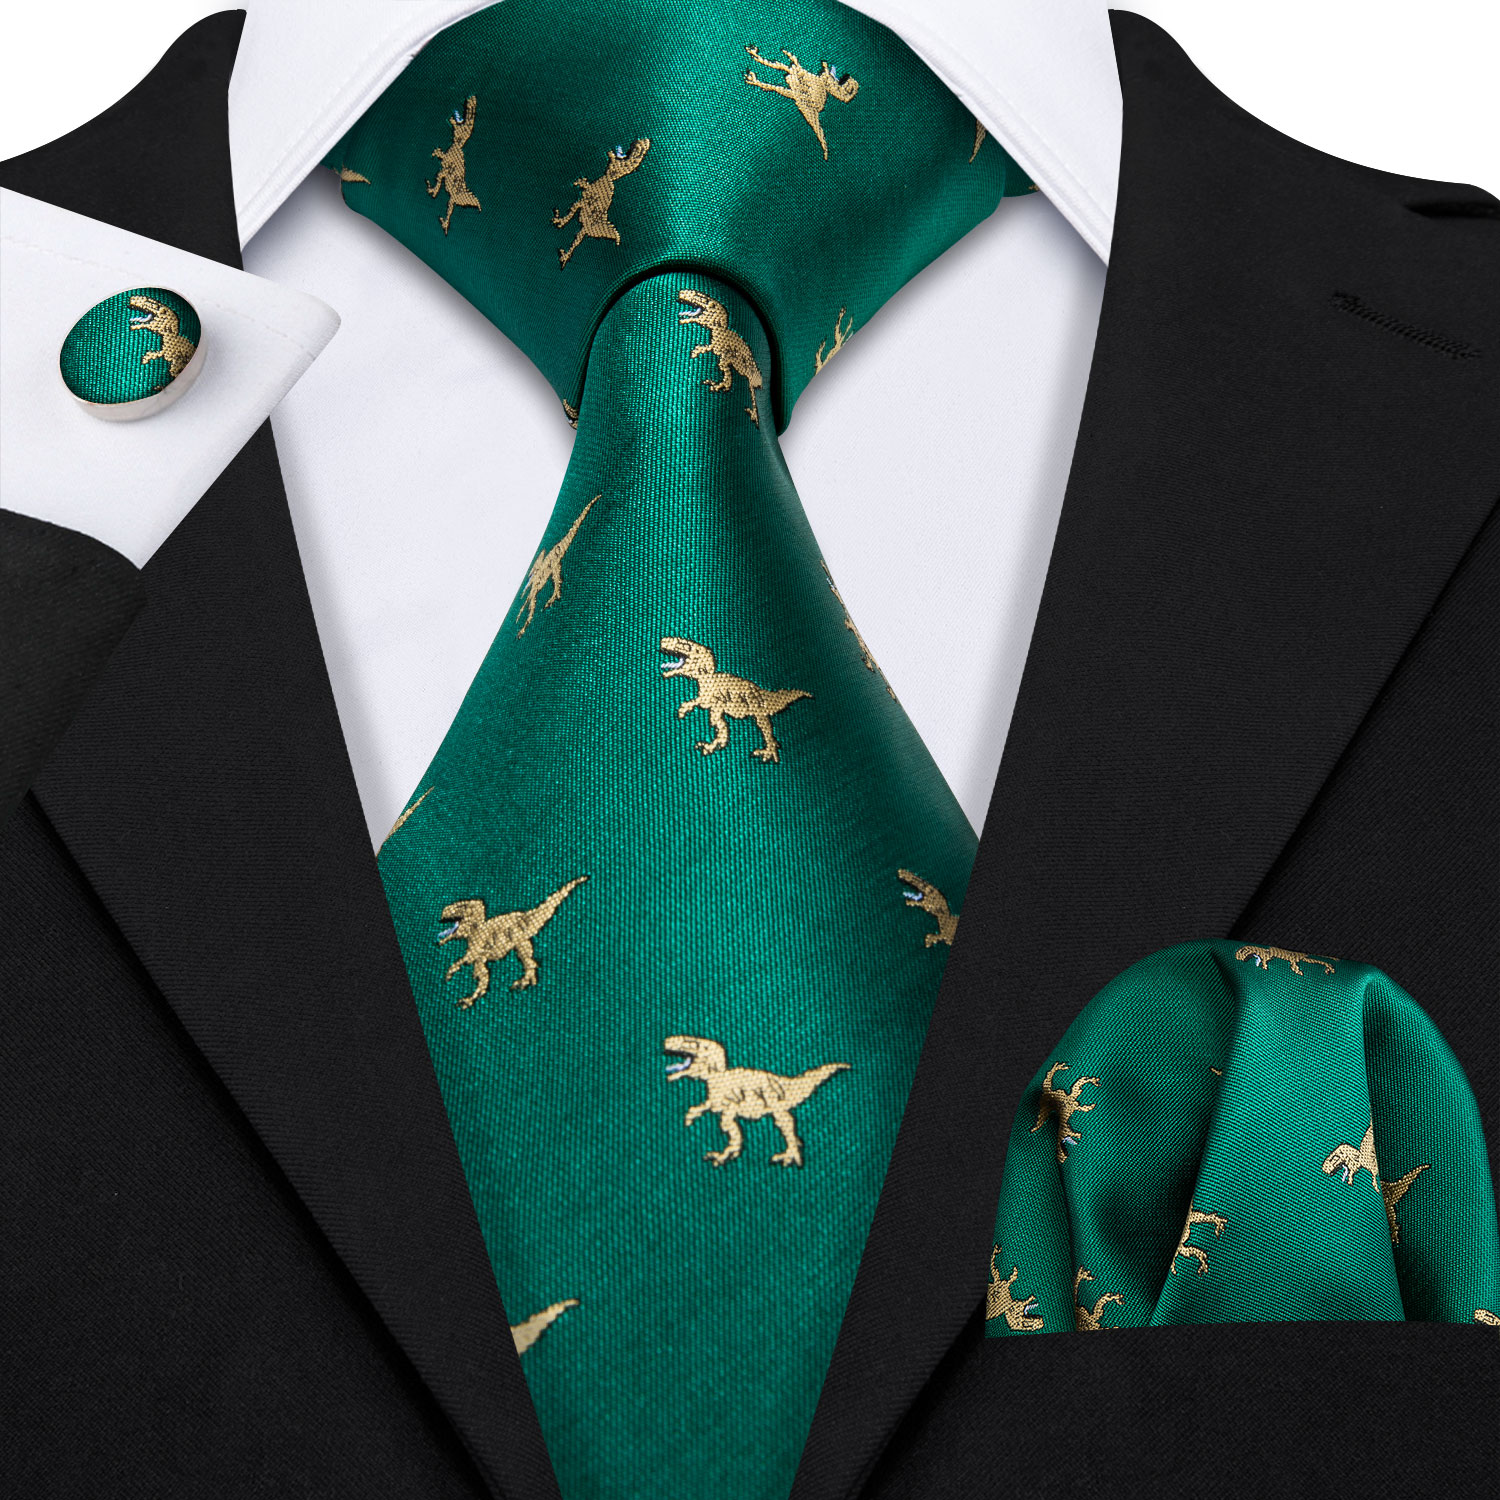 Barry.Wang Fahsion Designers Gold Dinosaur Green Mens Silk Ties Gravat Hanky Box Gifts Set Ties For Men Wedding Groom Neckties